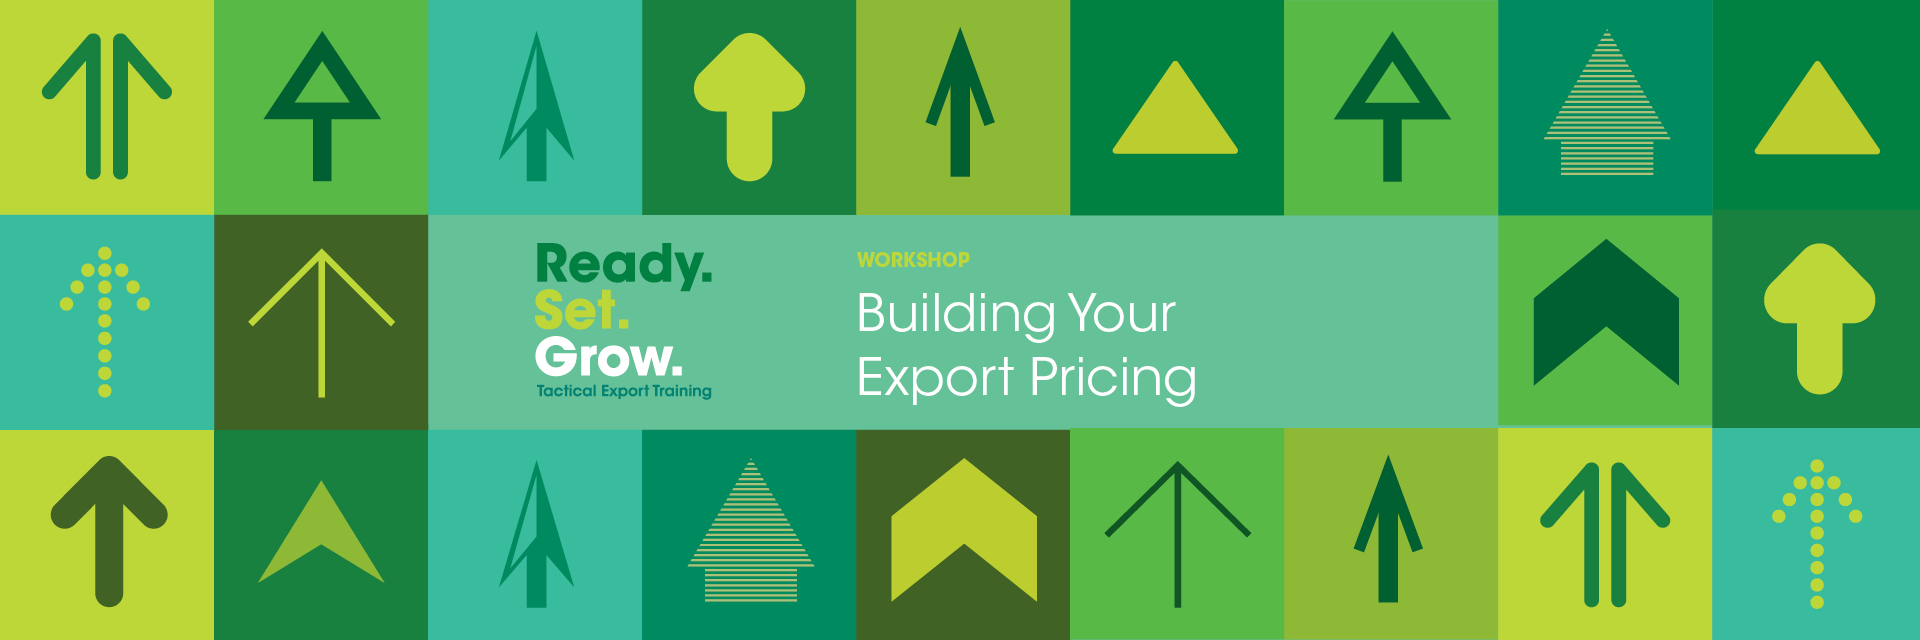 Building your Export Pricing